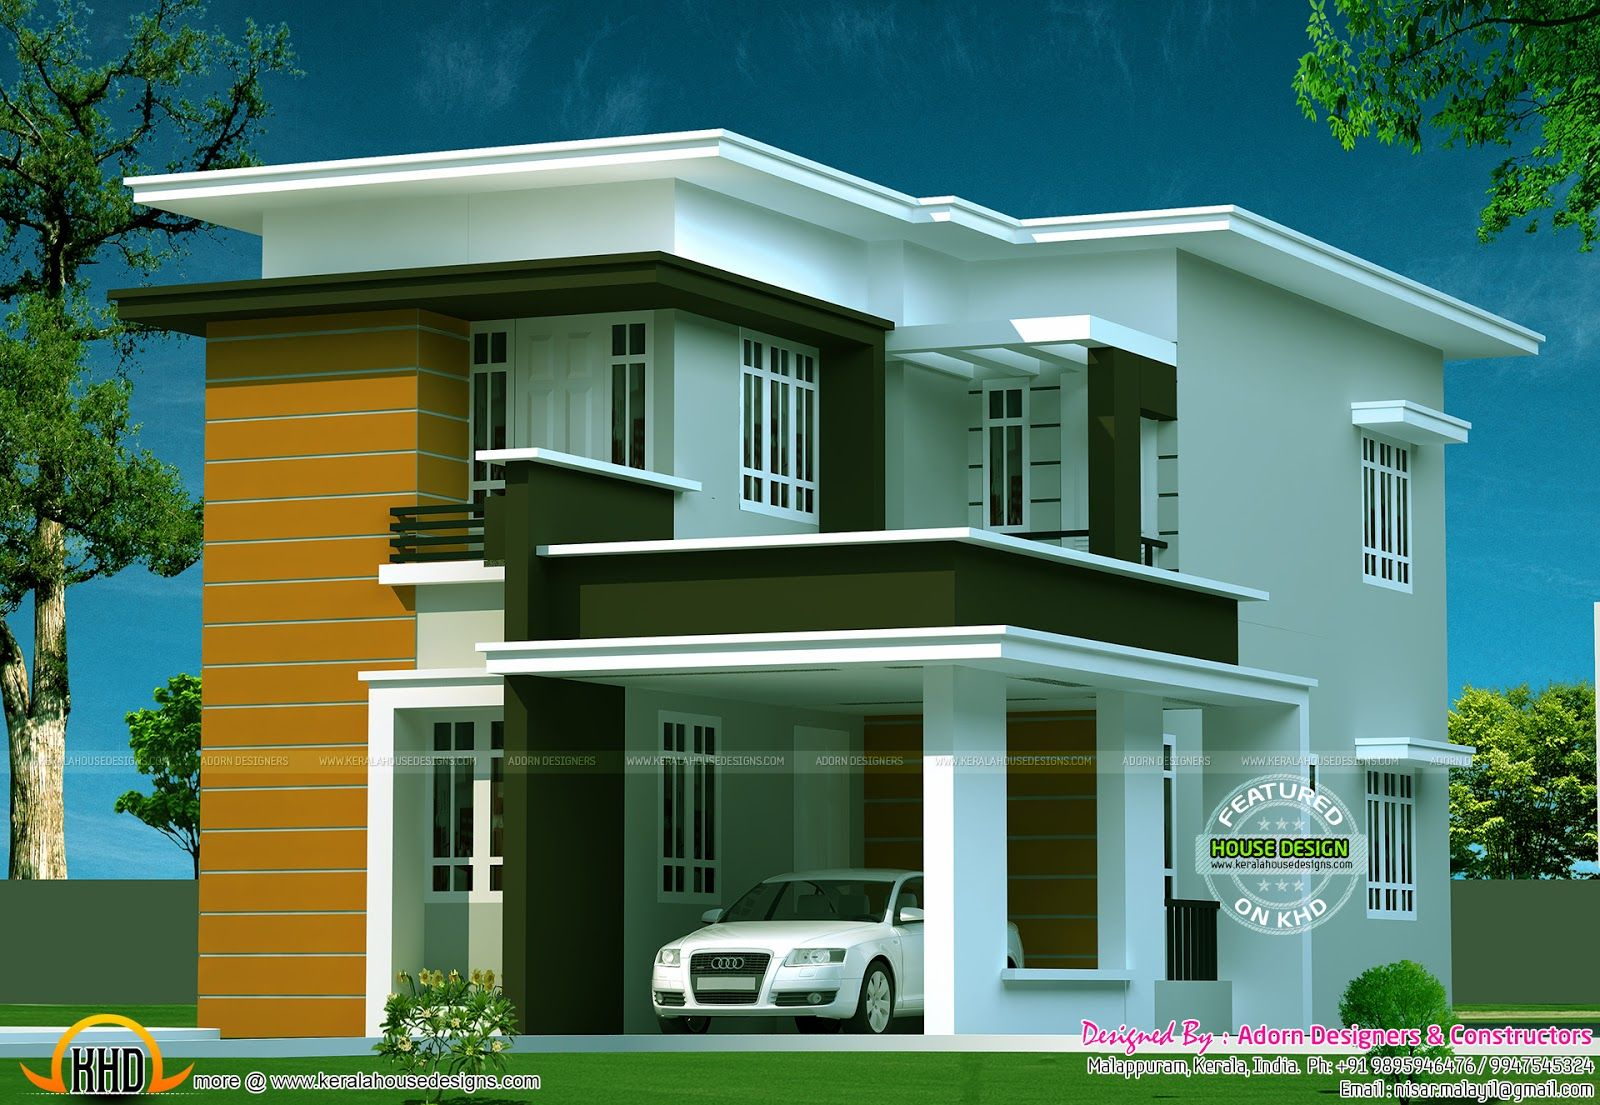 Small House Design Phi on mobile home designs, small modern home design, small house concepts, small room design, boat designs, small house floor, small cottage, shed designs, small kit homes, small house interiors, small house on wheels, bathroom designs, apartment designs, small modern contemporary homes, small office design, small guest house, small house with garage, small modular homes, small living room decorating ideas, living room designs,